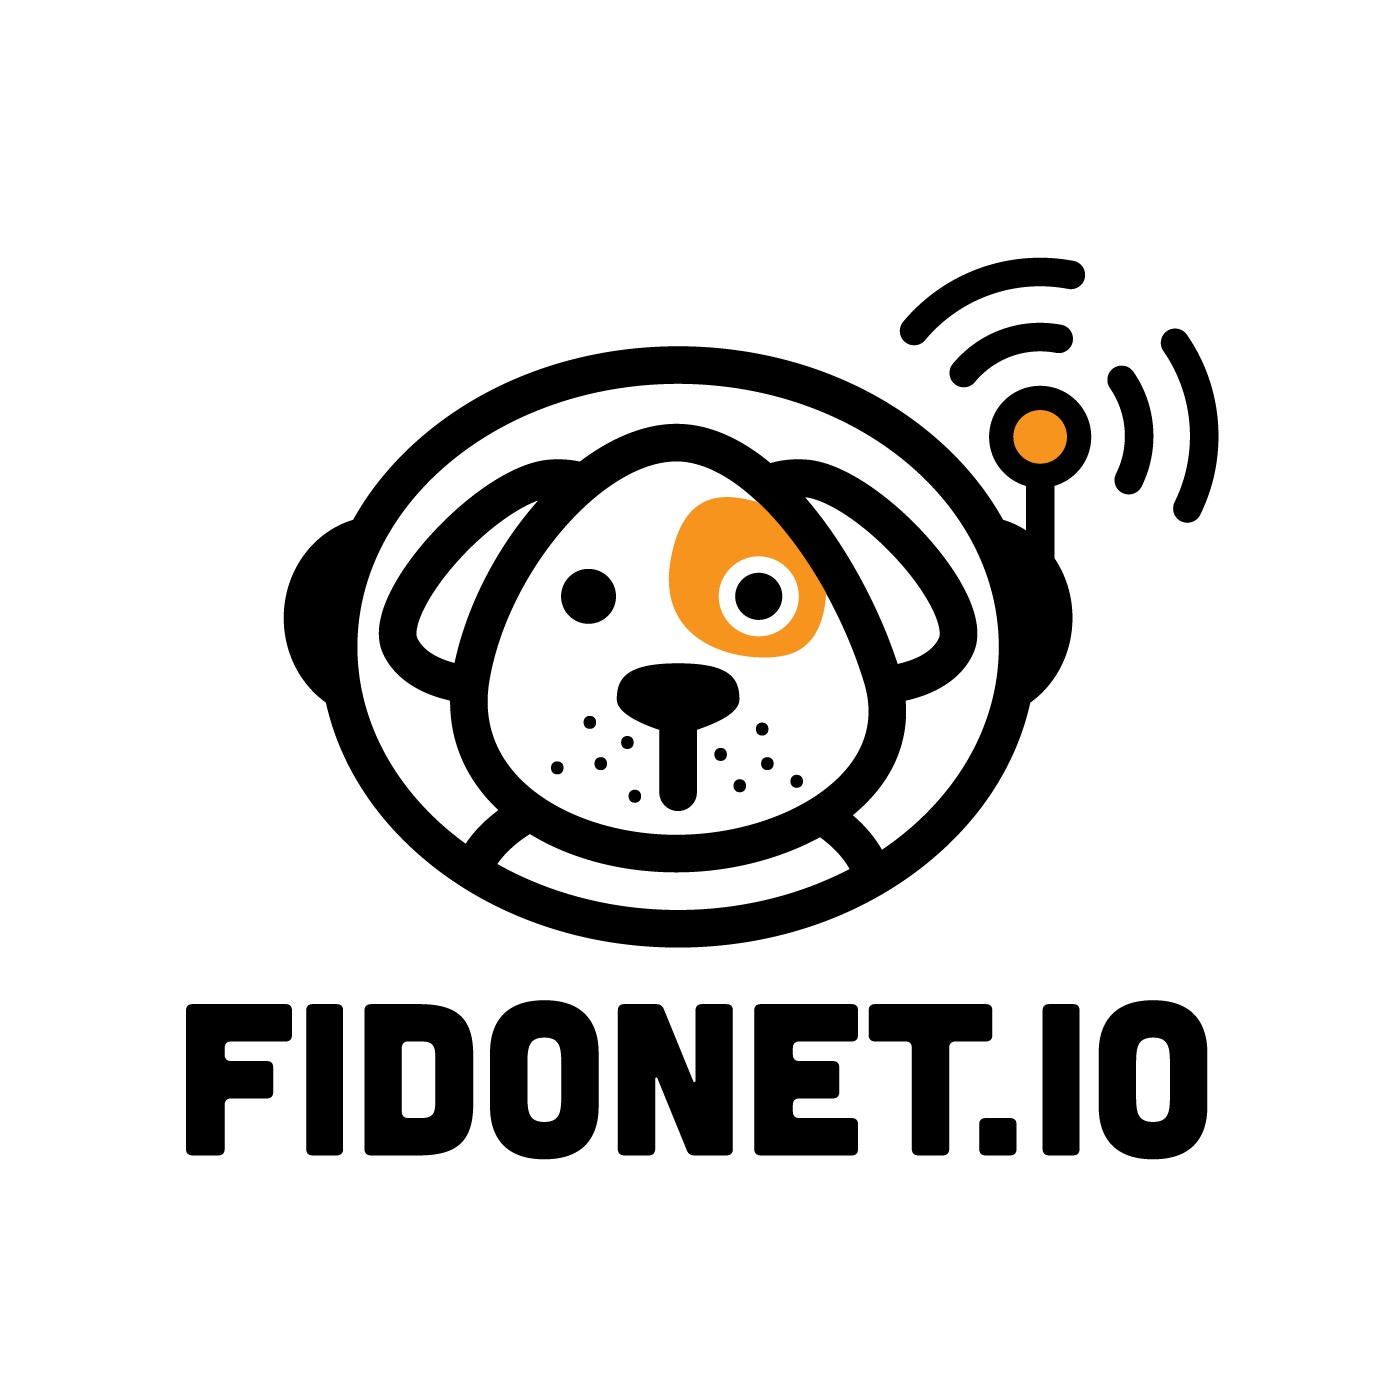 Fidonet logo